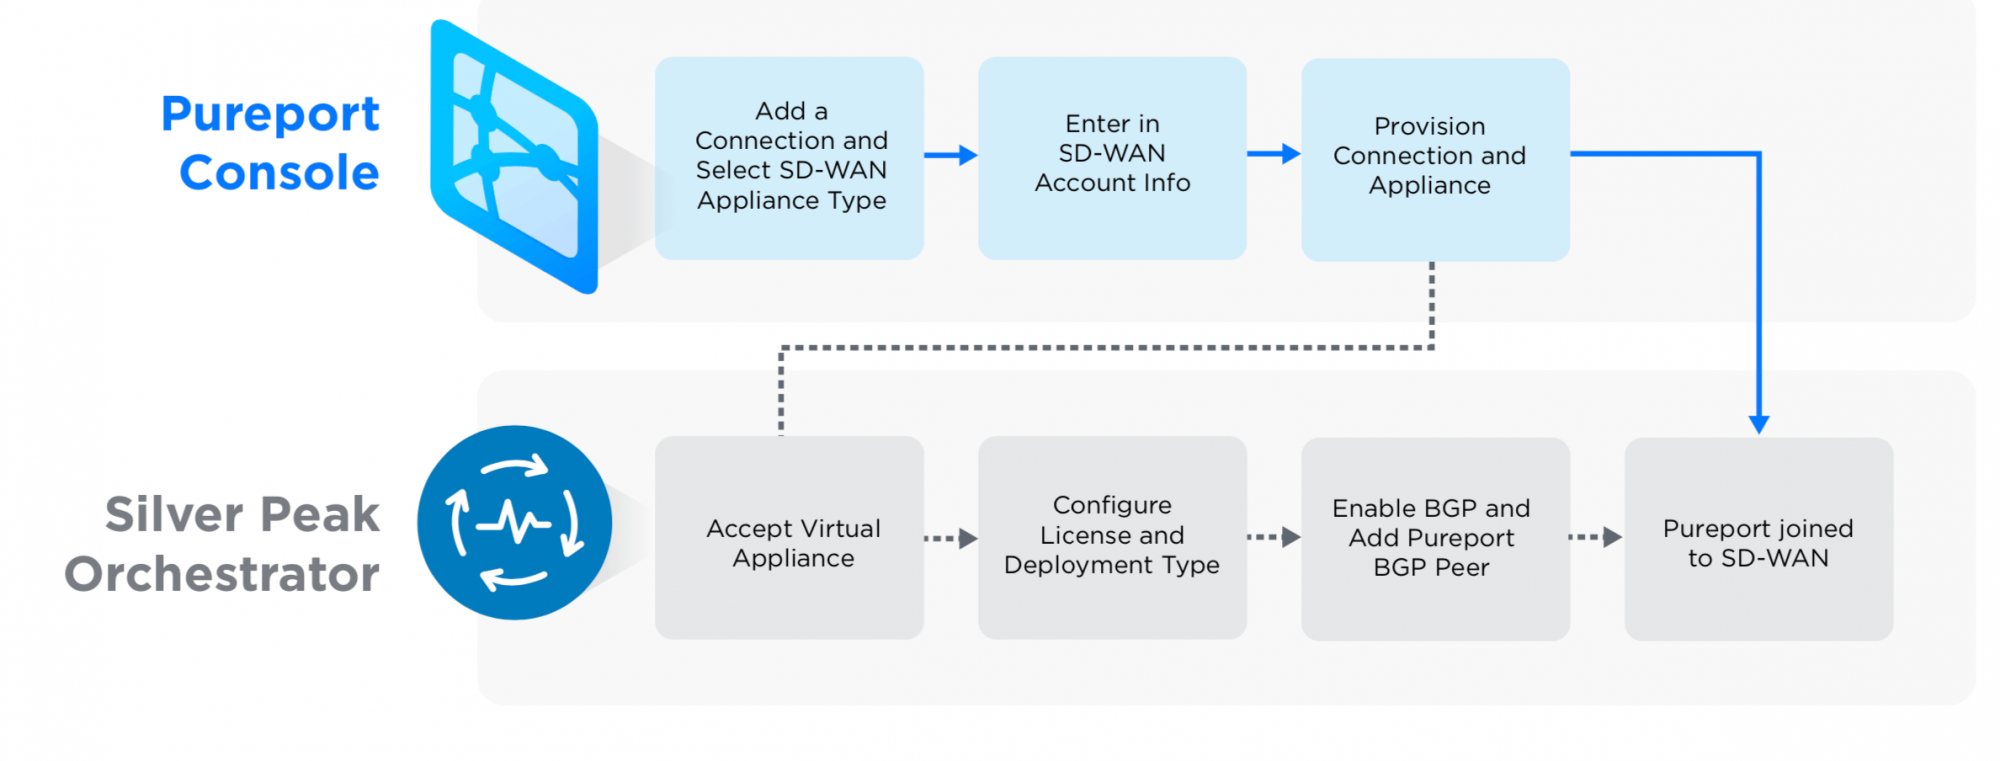 Pureport's SD-WAN Connect: Key Features and Functionality